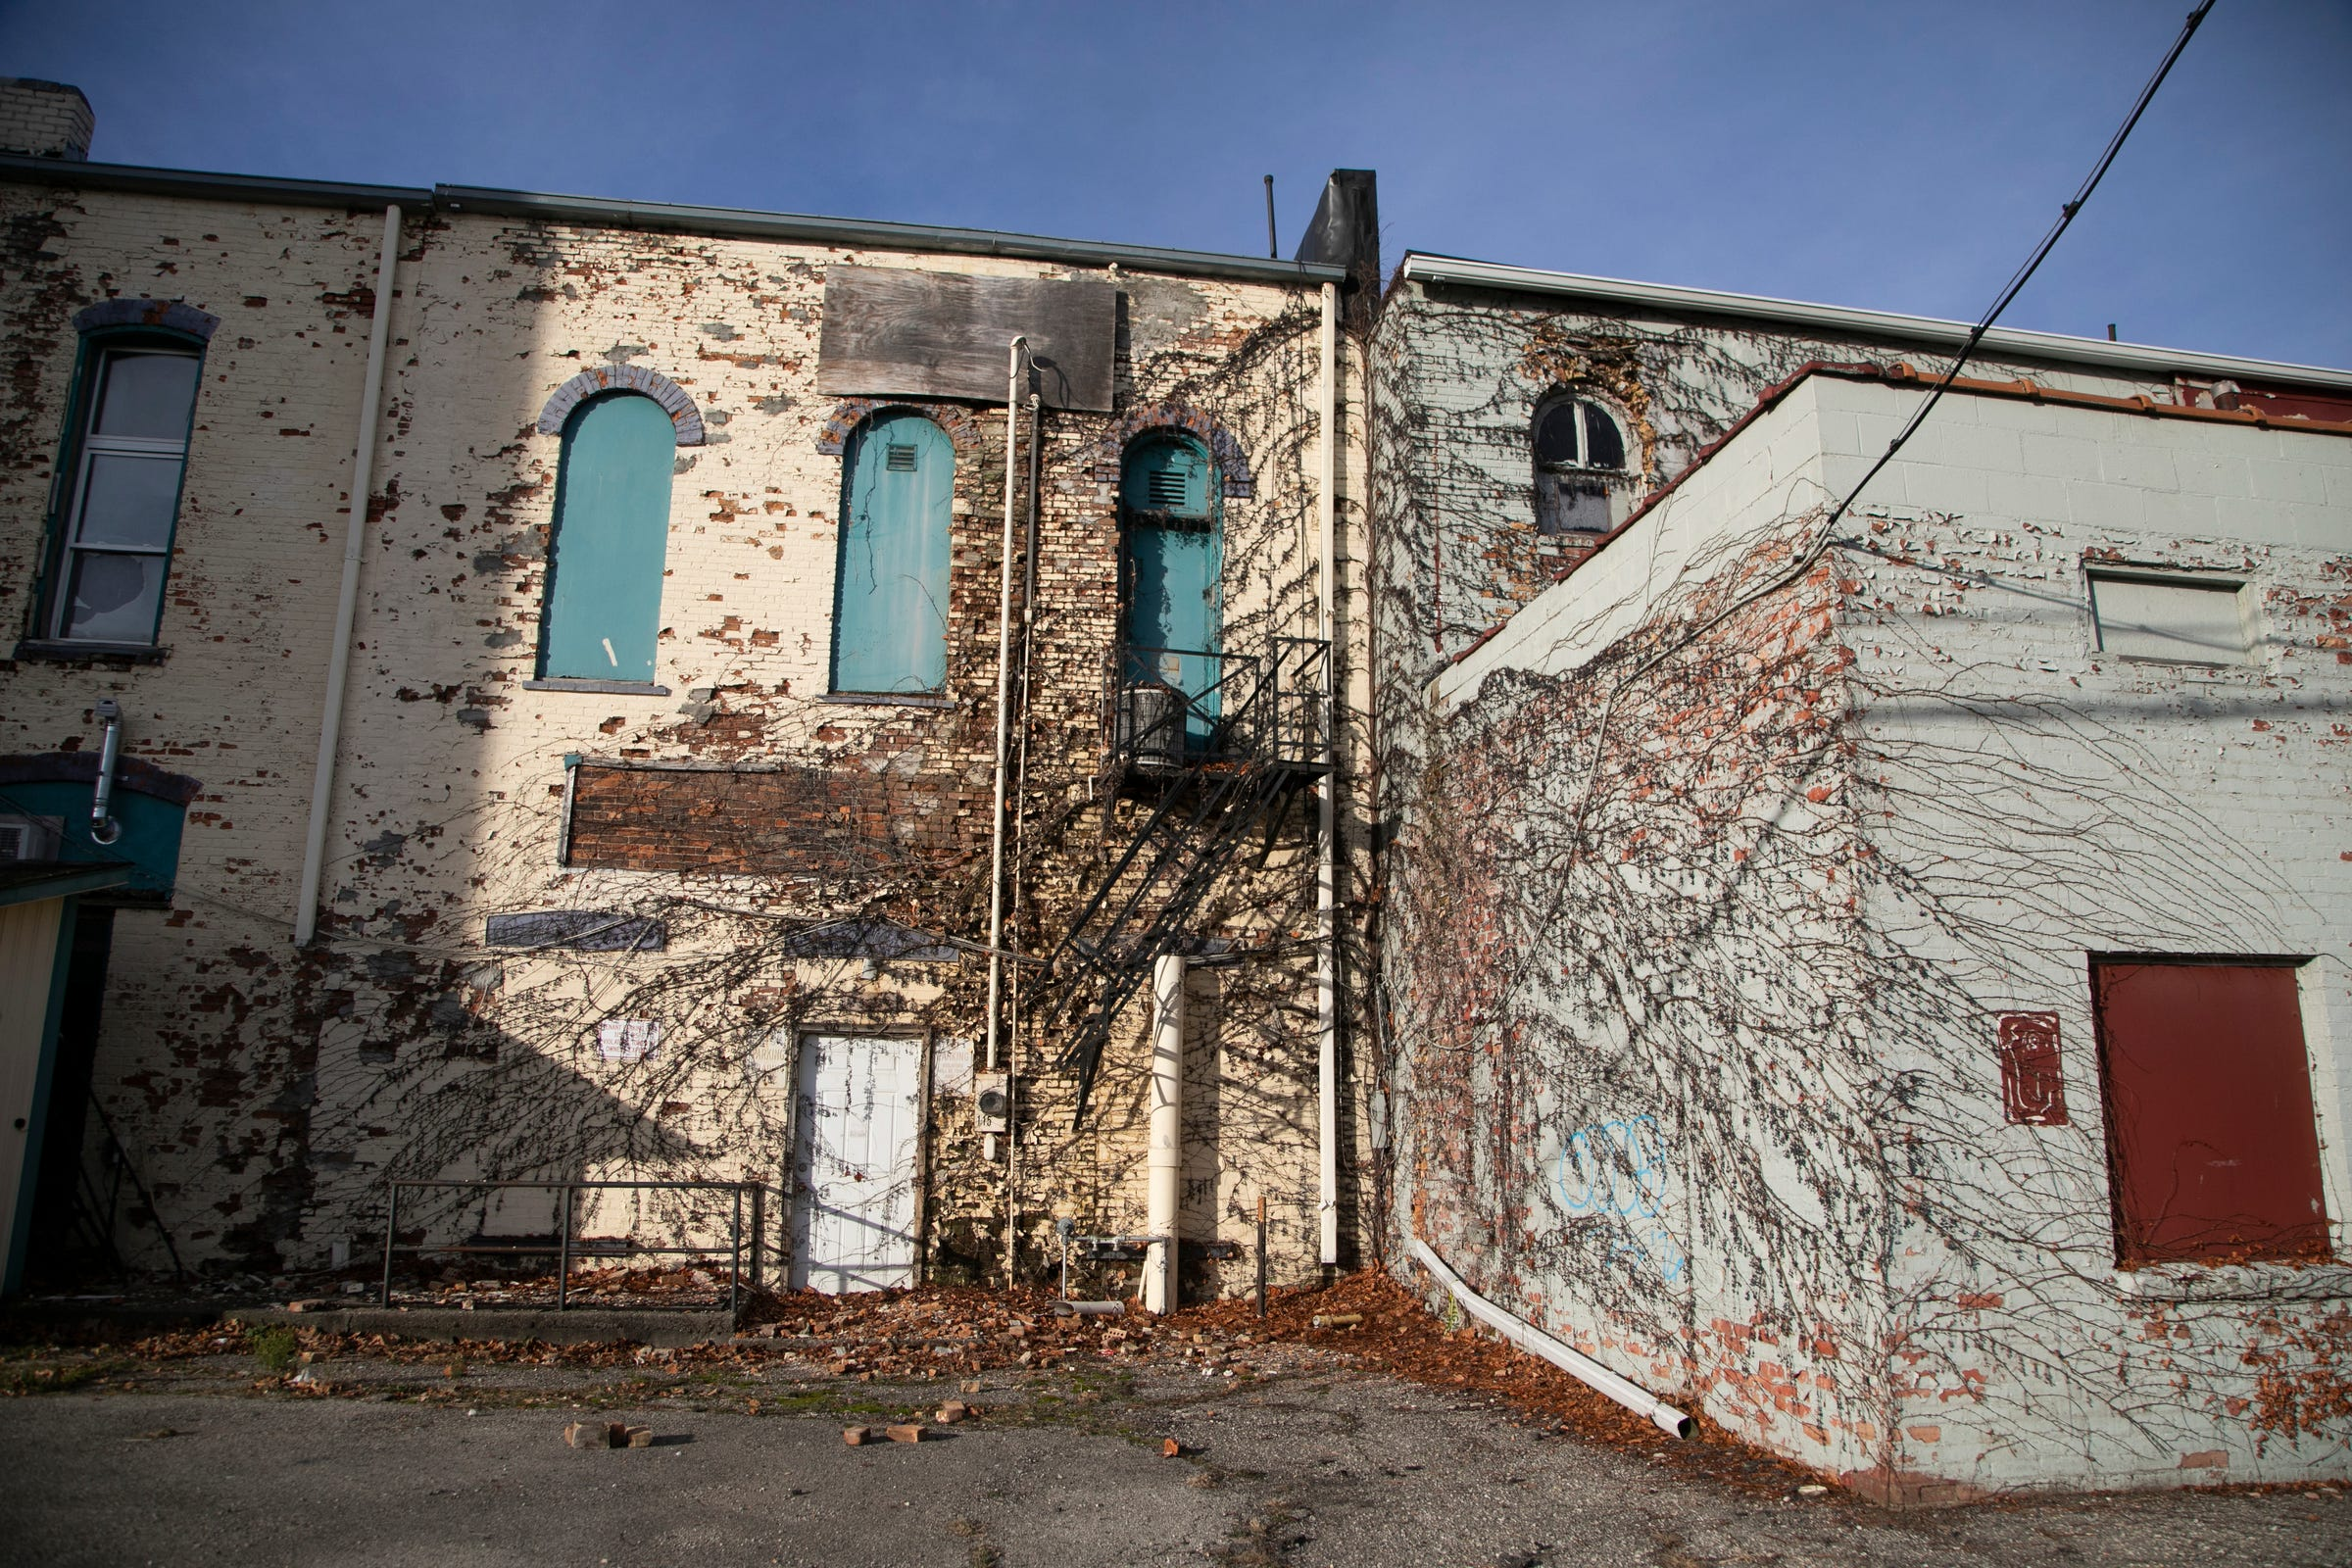 The backsides of some buildings that run along S. Superior St. in Albion. Photo taken in December.